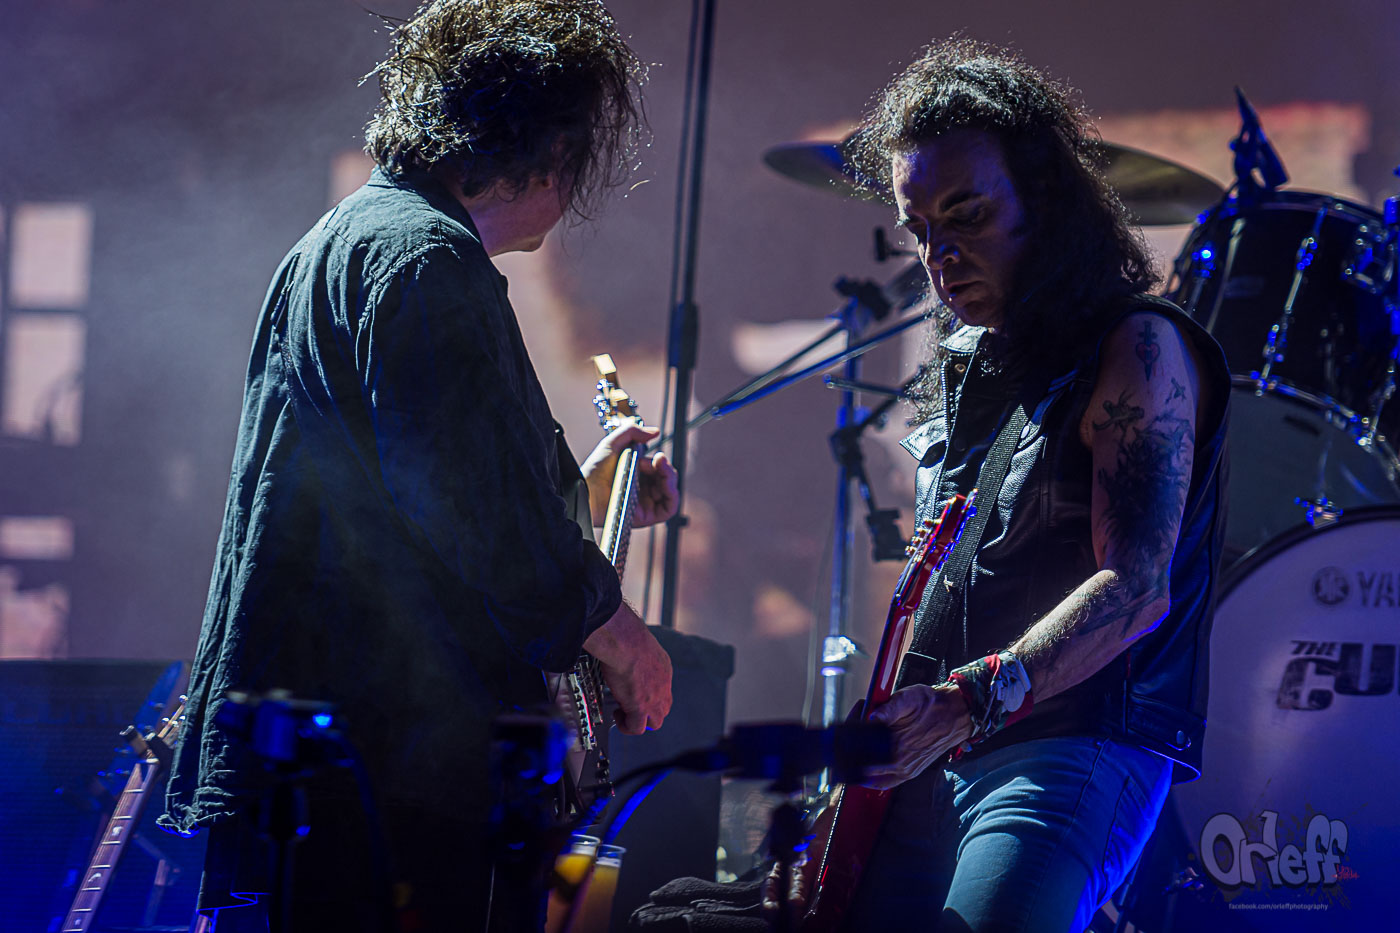 The Cure @ INmusic festival, 2019